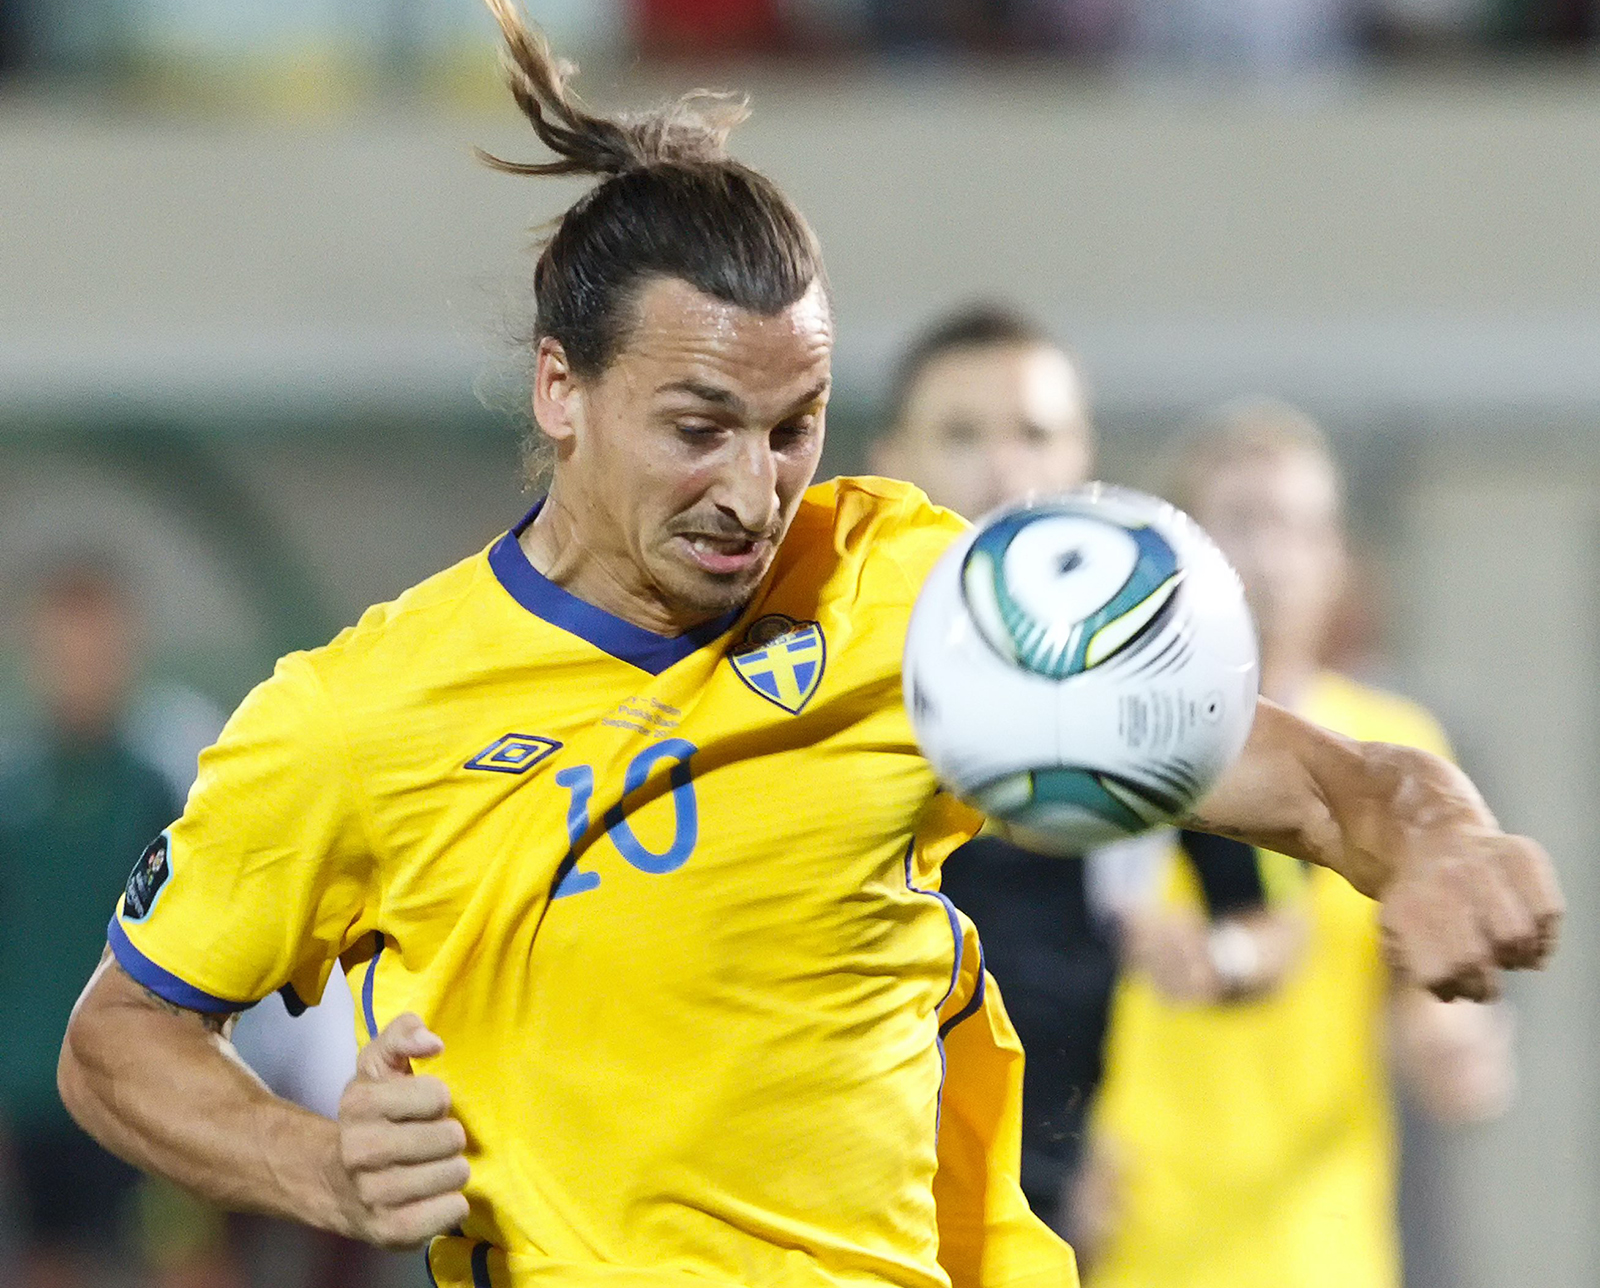 Game Theory & The Beautiful Game: Ibrahimovic, EA Sports And Collective Bargaining Of Image Rights